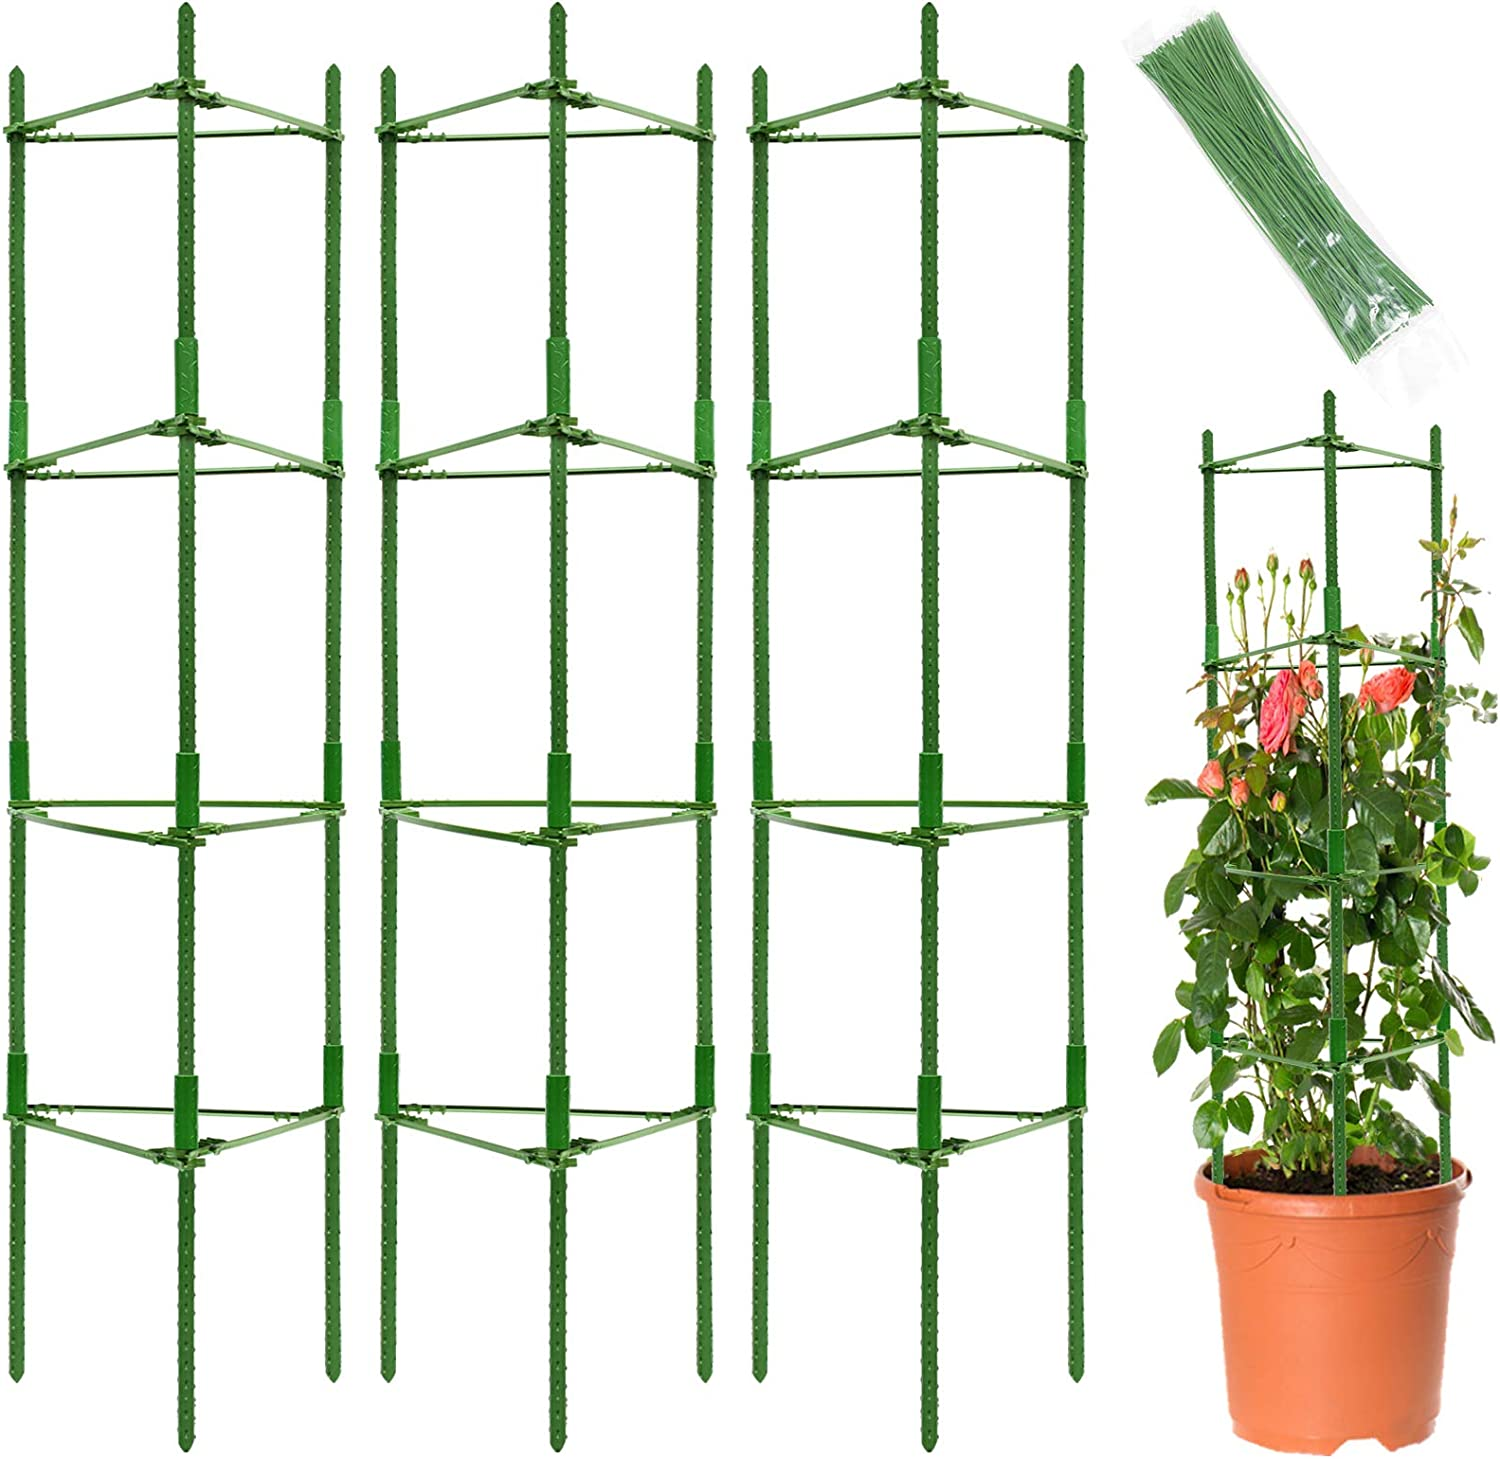 Halatool 5.4ft 3-Pack Tomato Cage for Garden Plant Support- Multifunctional Adjustable Plant Stakes with 100pcs Plant Twist Tie for Vertical Climbing Plants, Vine, Flowers, Vegetables (Green)